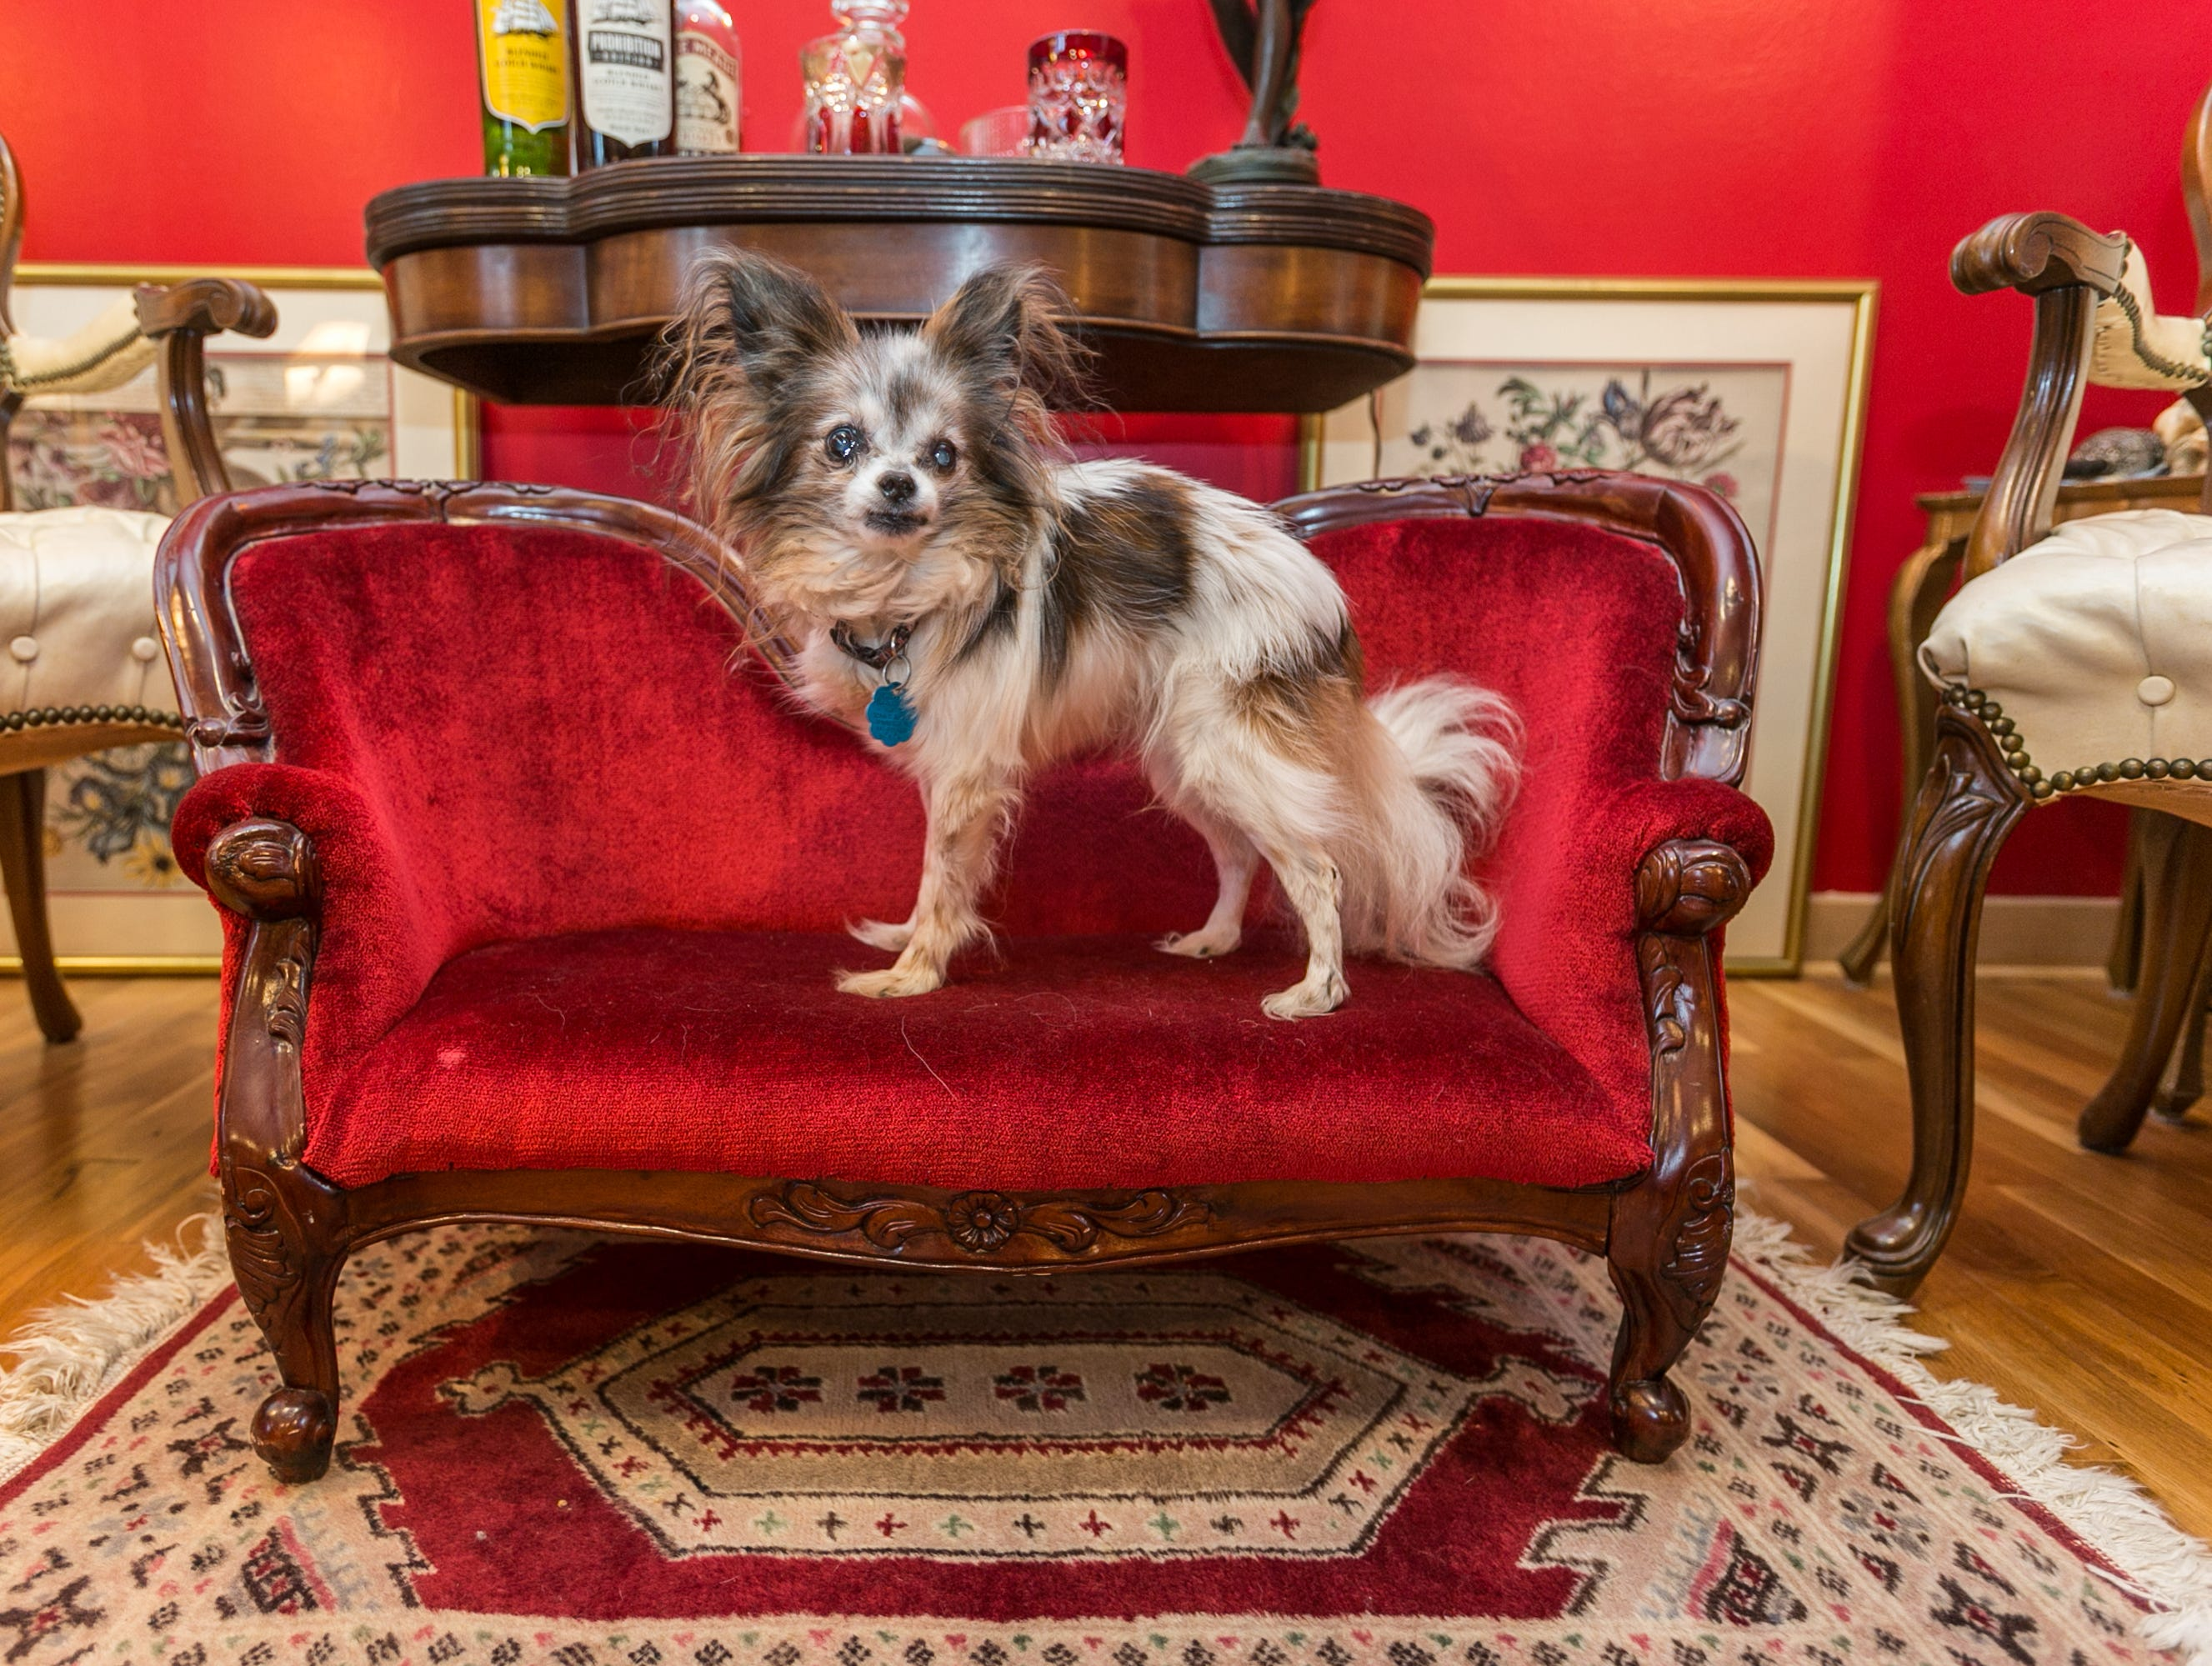 Pee Pee, Jeff and Kyaw's 16- or 17-year-old Papillon, has a settee to match his humans' in the red room, where the couple go to discuss weightier issues.